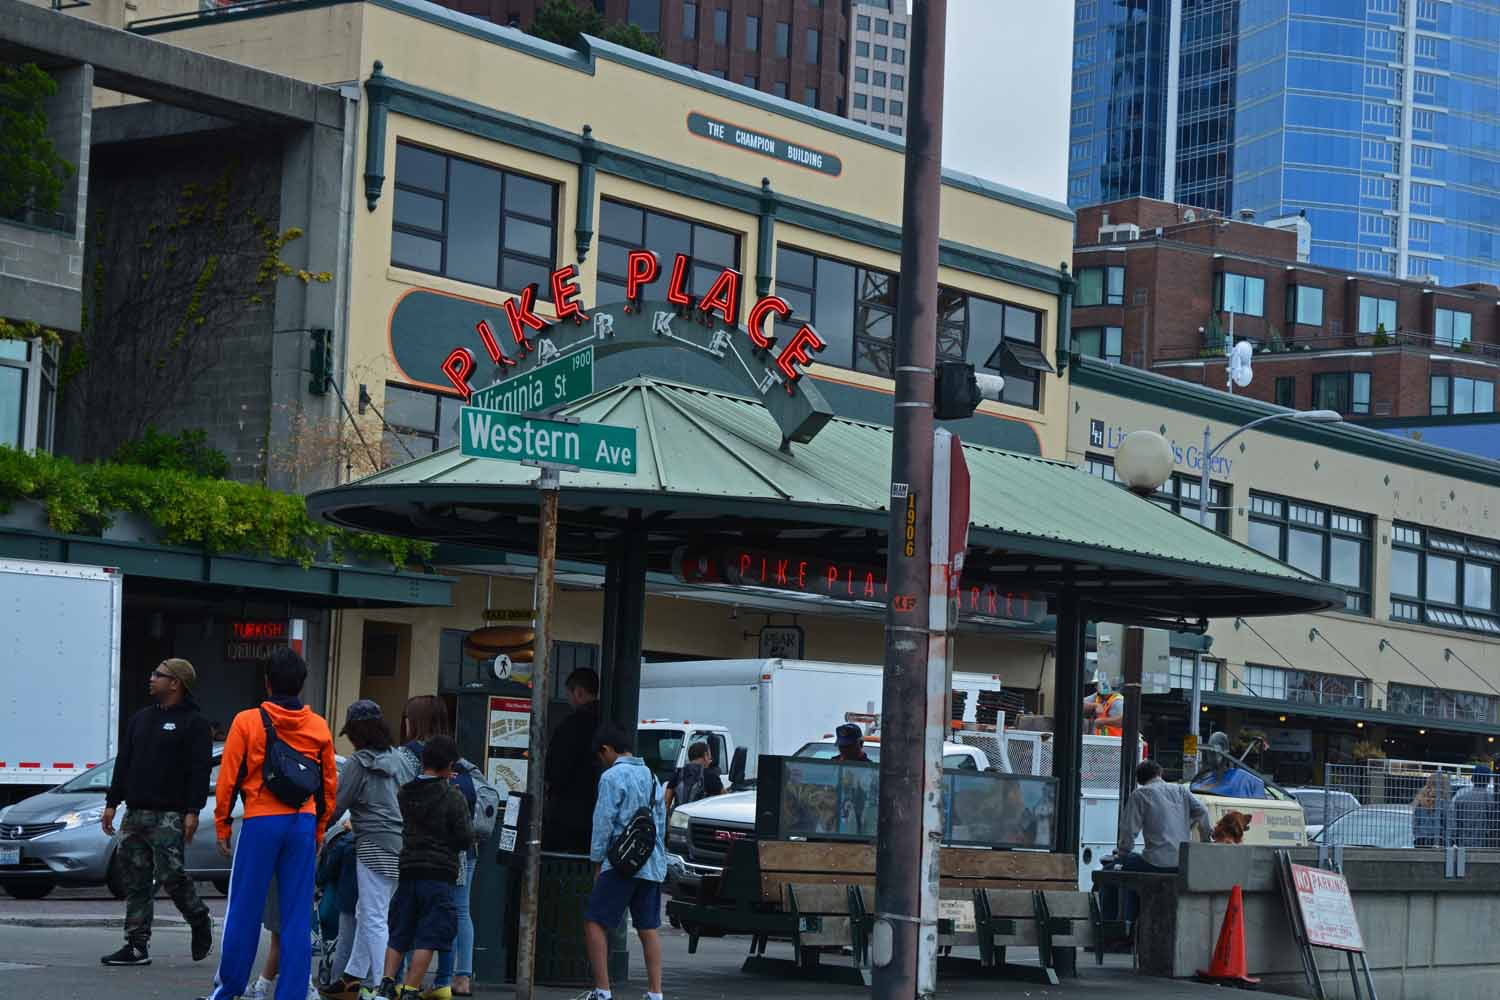 Pike Place Market is a must see.  This was our second time in Seattle and the market called us back.